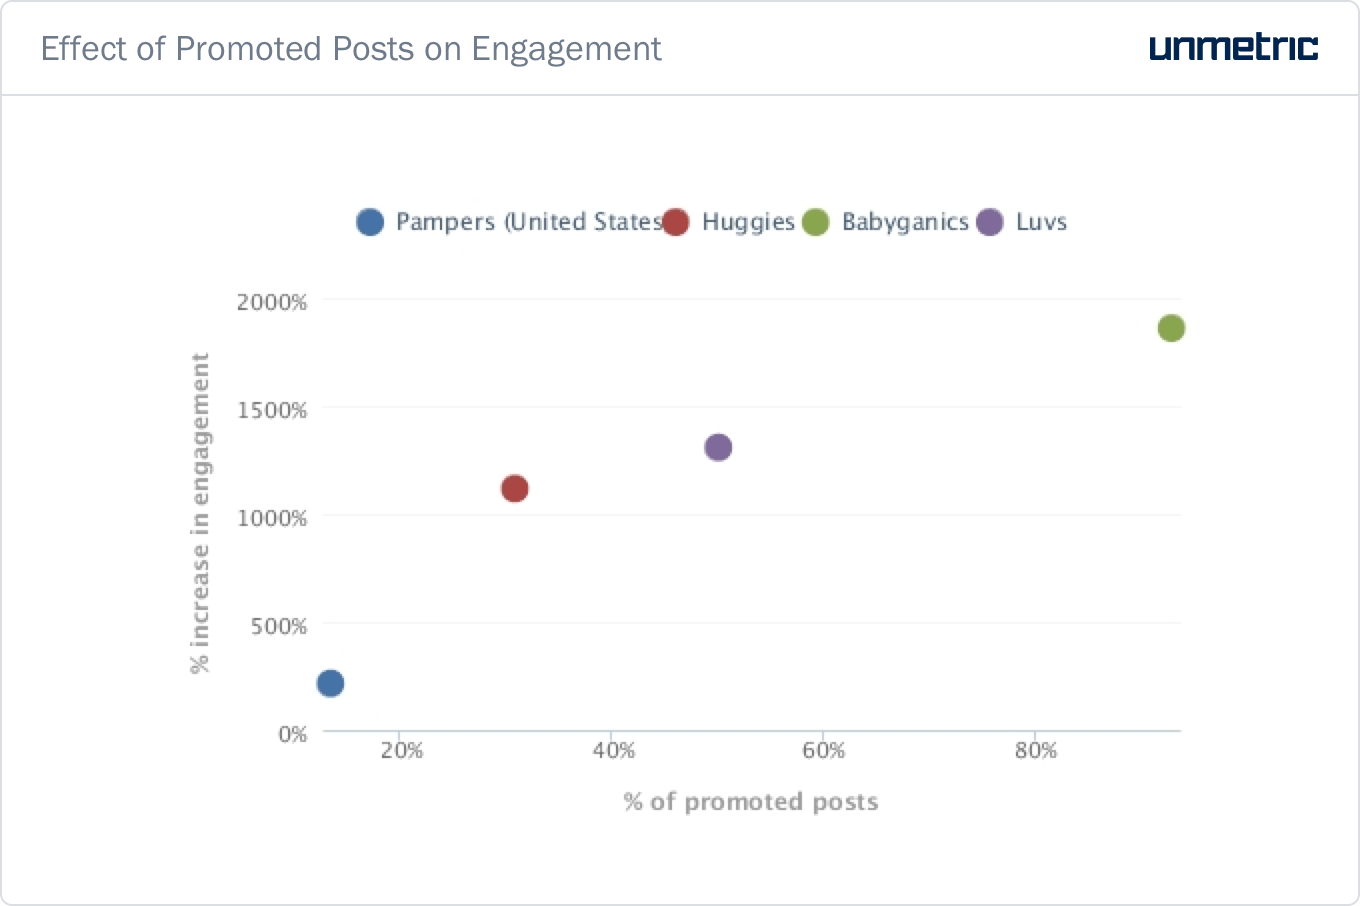 Effect-of-Promoted-Posts-on-Engagement.png